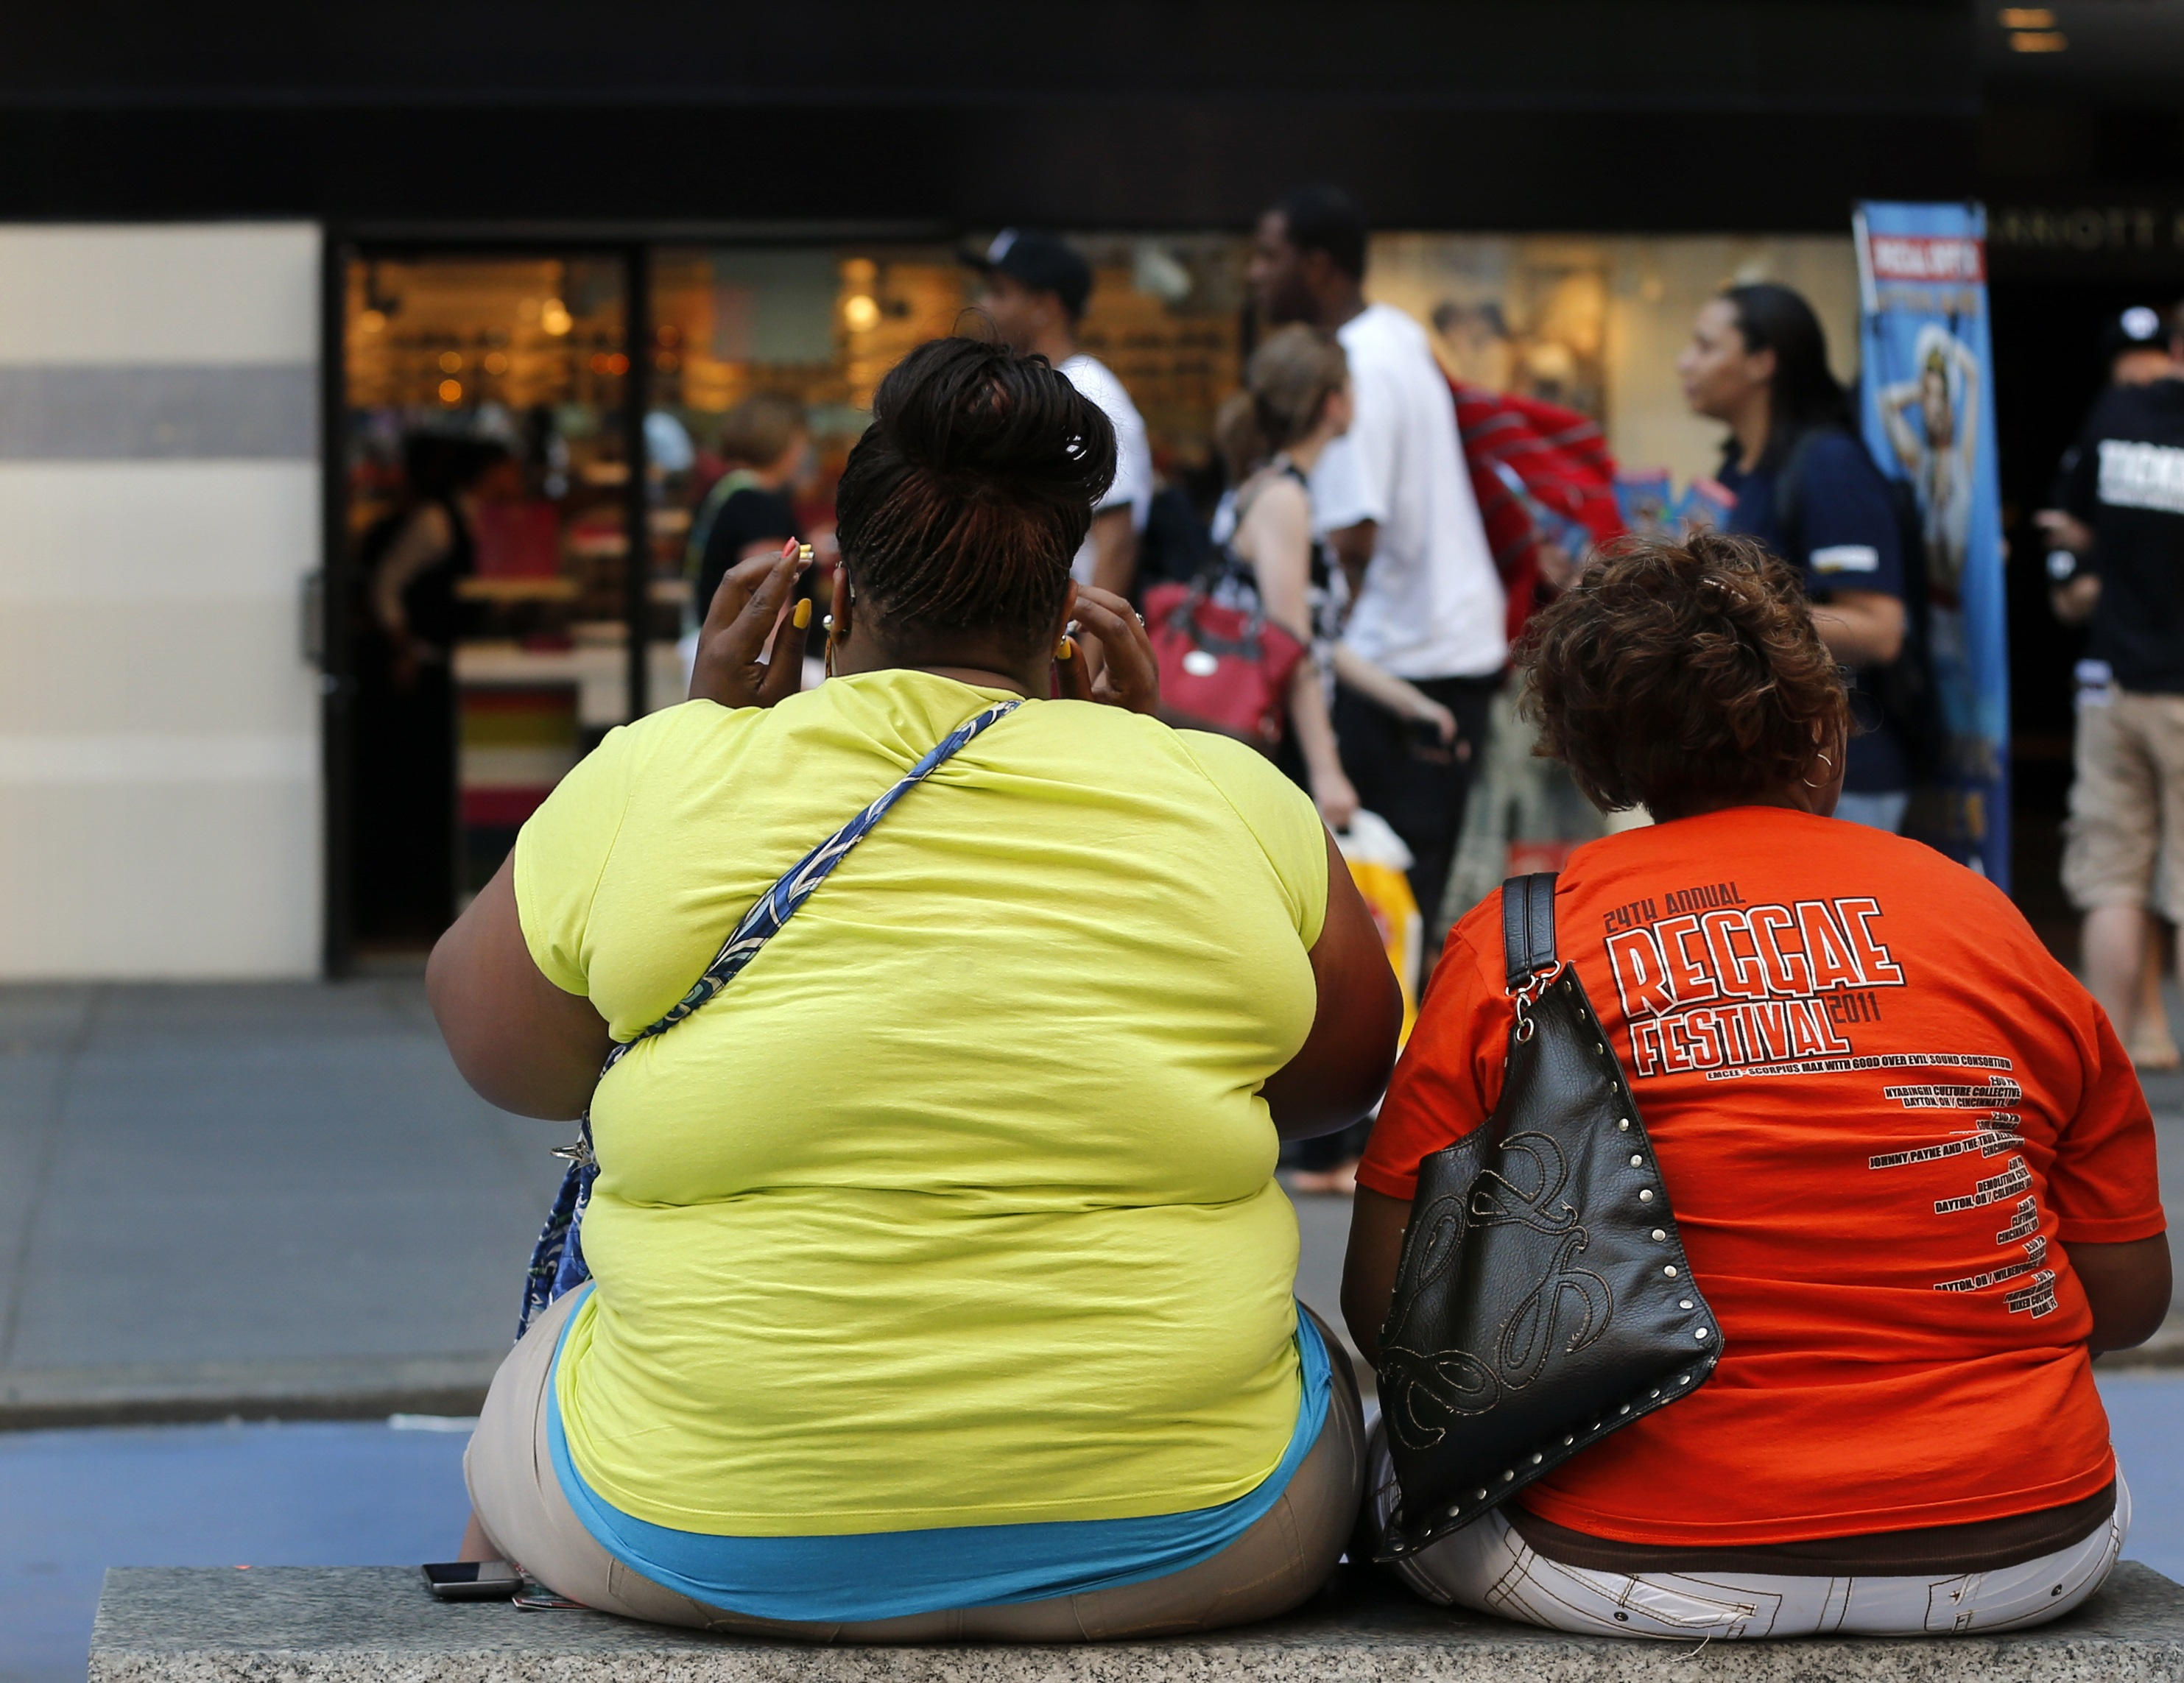 New Approaches Needed To Get Obesity Under Control